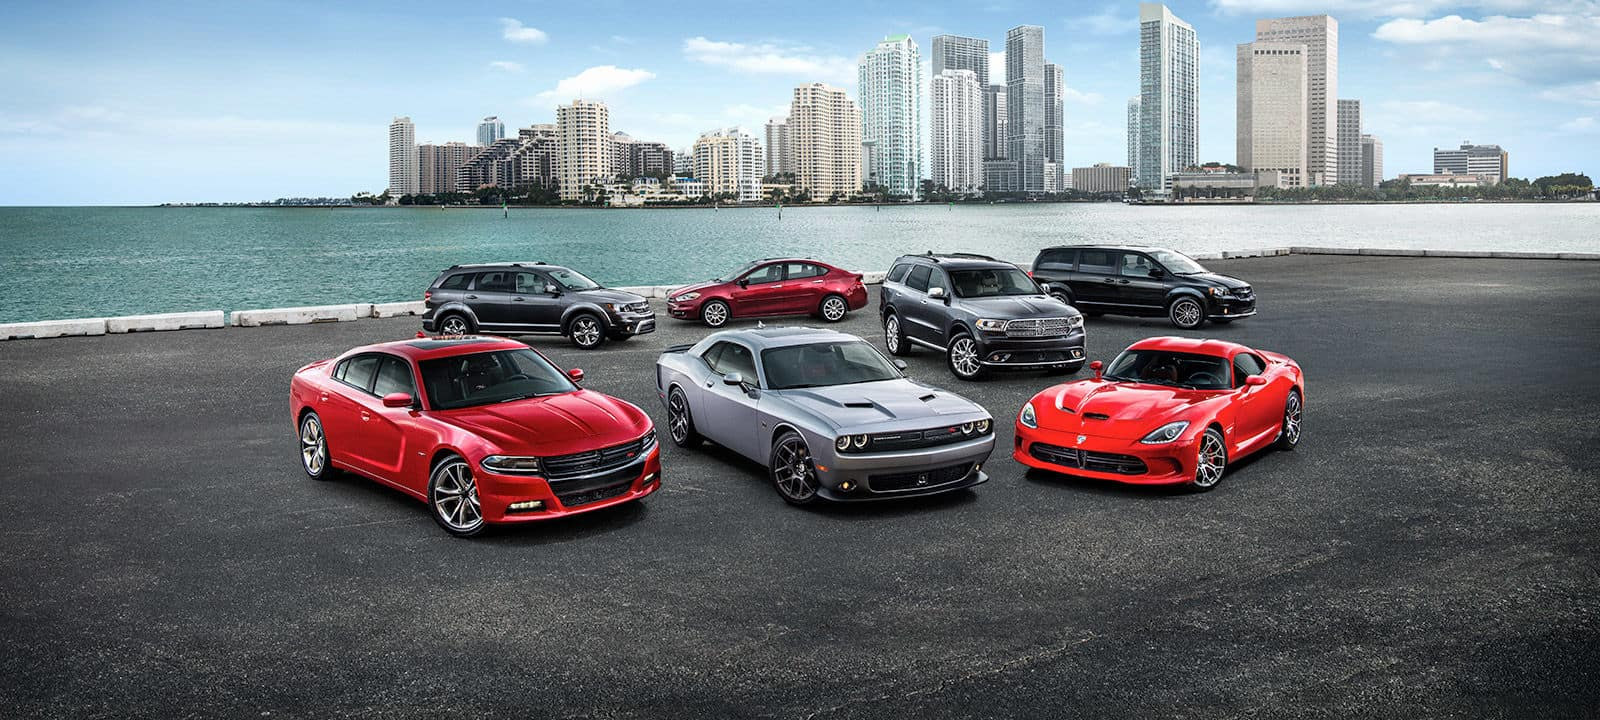 Dodge-Dealership-Miami